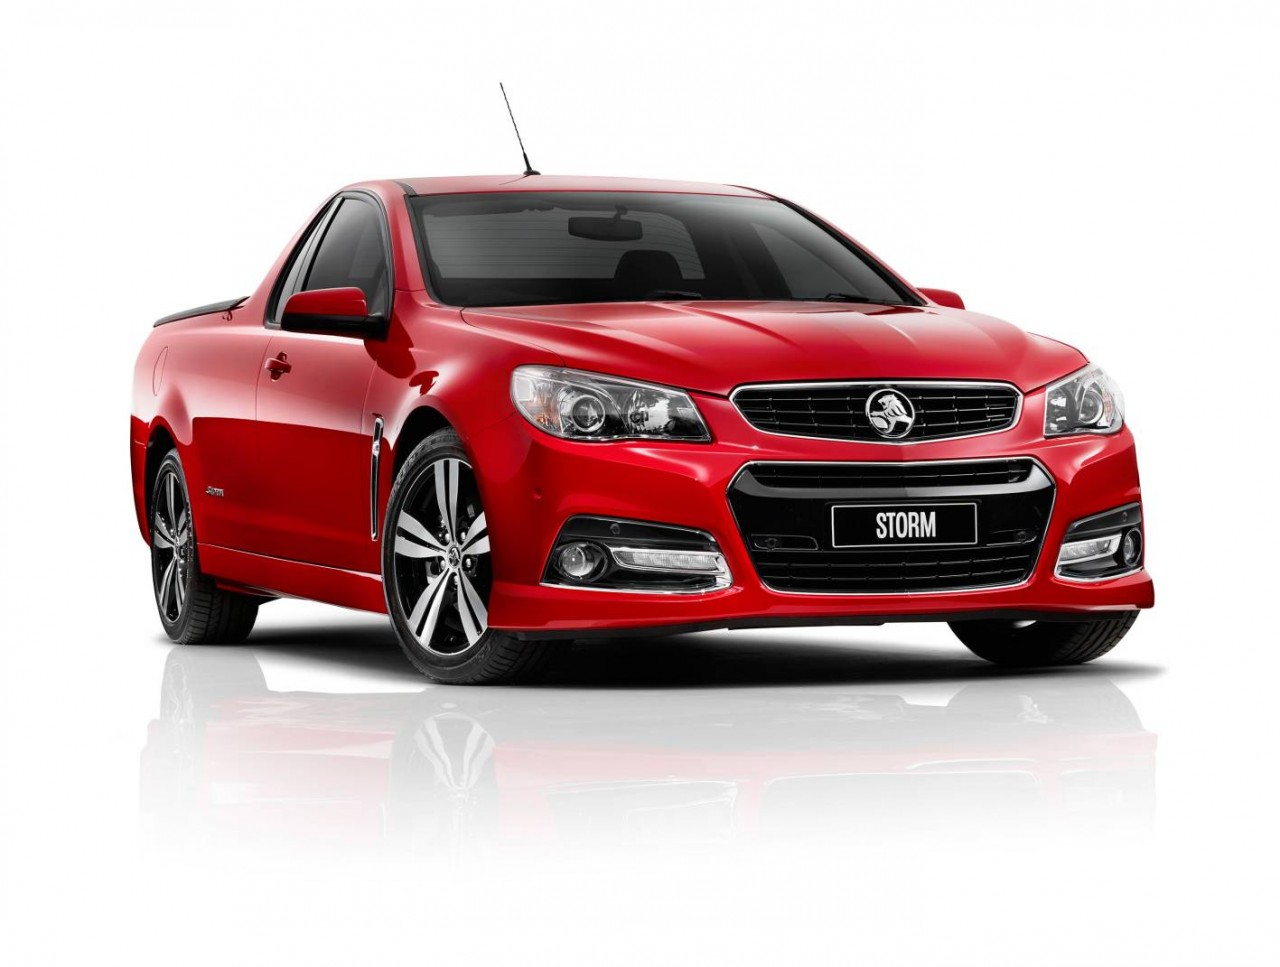 ... vf commodore ss storm edition fog lights 2015 holden vf commodore ss